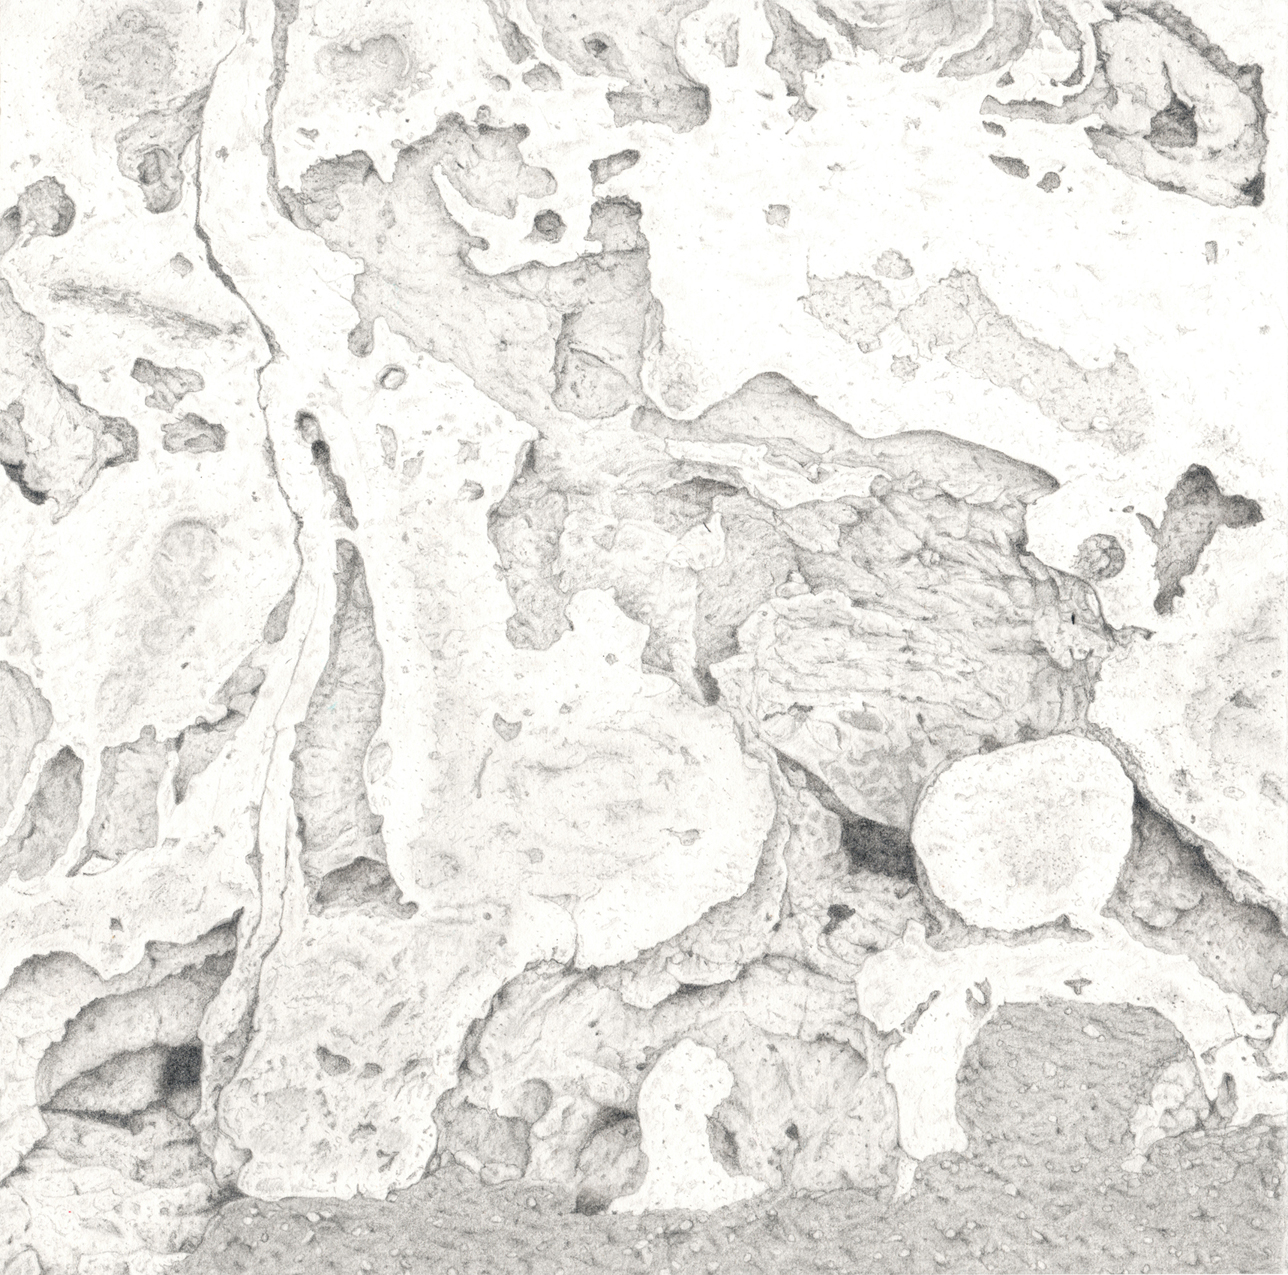 Observation, realism, graphite on paper, texture, nature, abstraction, drawing